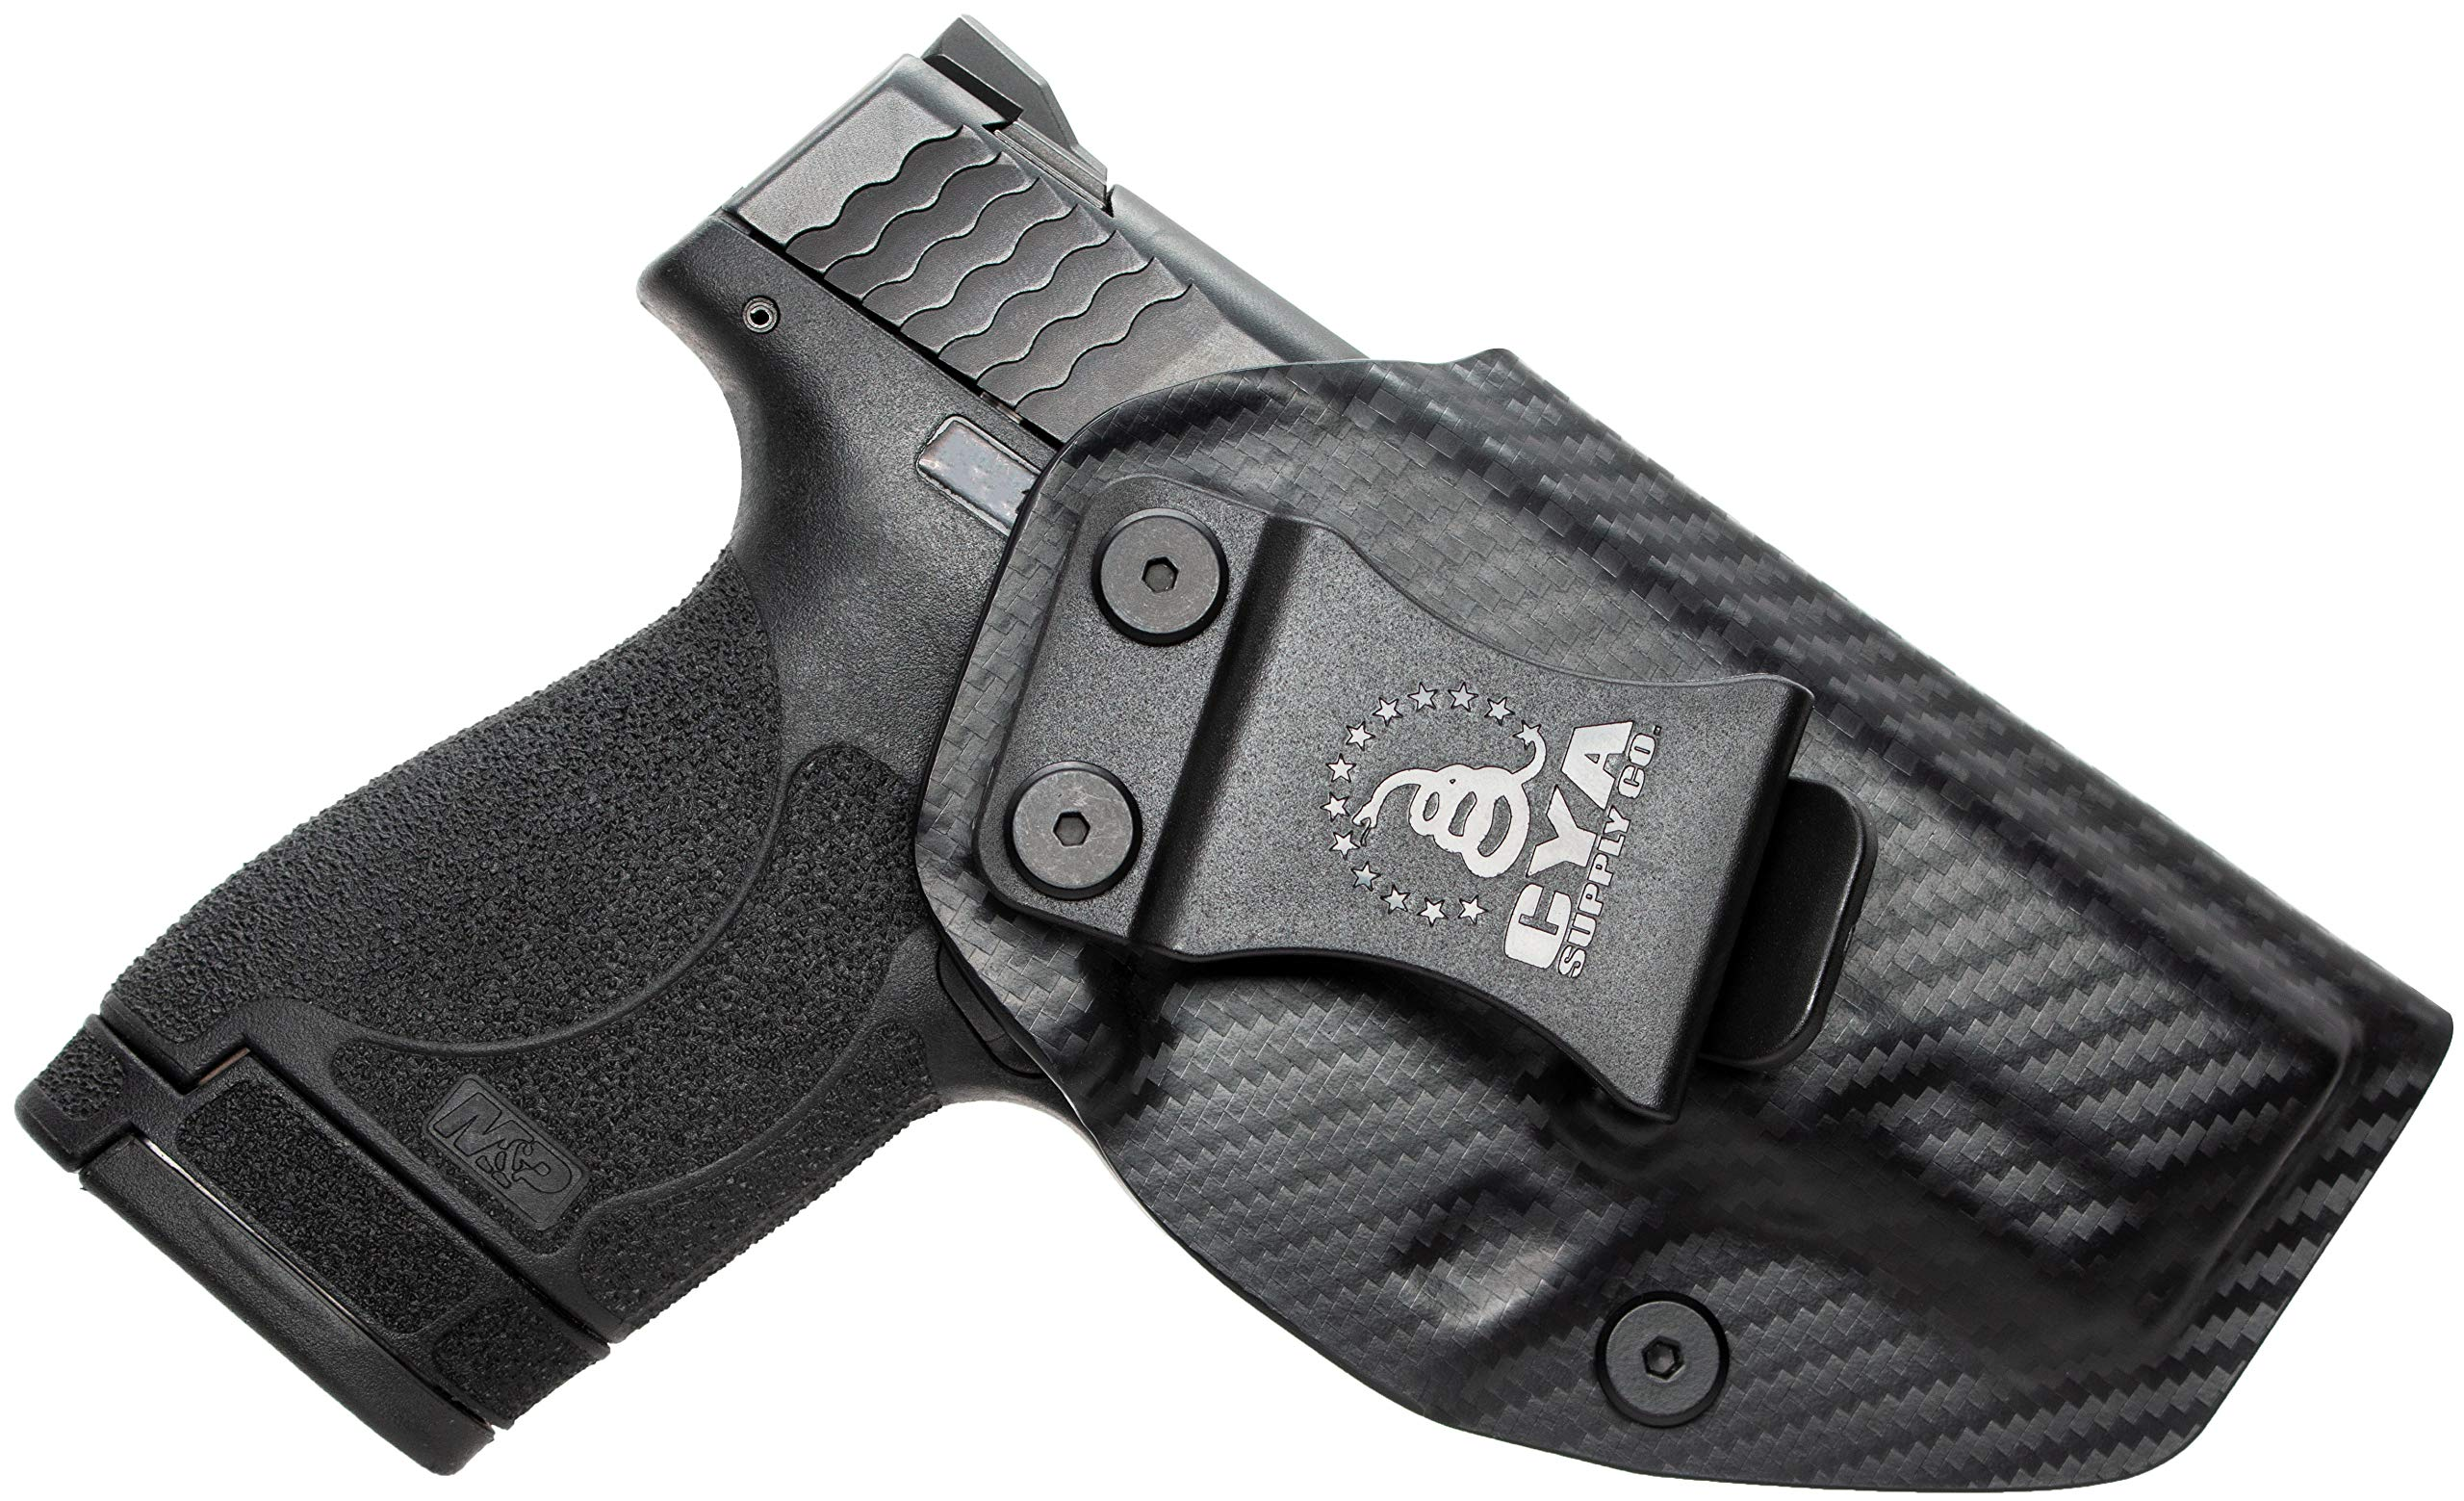 CYA Supply Co. IWB Holster Fits: Smith & Wesson M&P Shield & Shield 2.0-9MM/.40 S&W - Veteran Owned Company - Made in USA - Inside Waistband Concealed Carry Holster by CYA Supply Co.